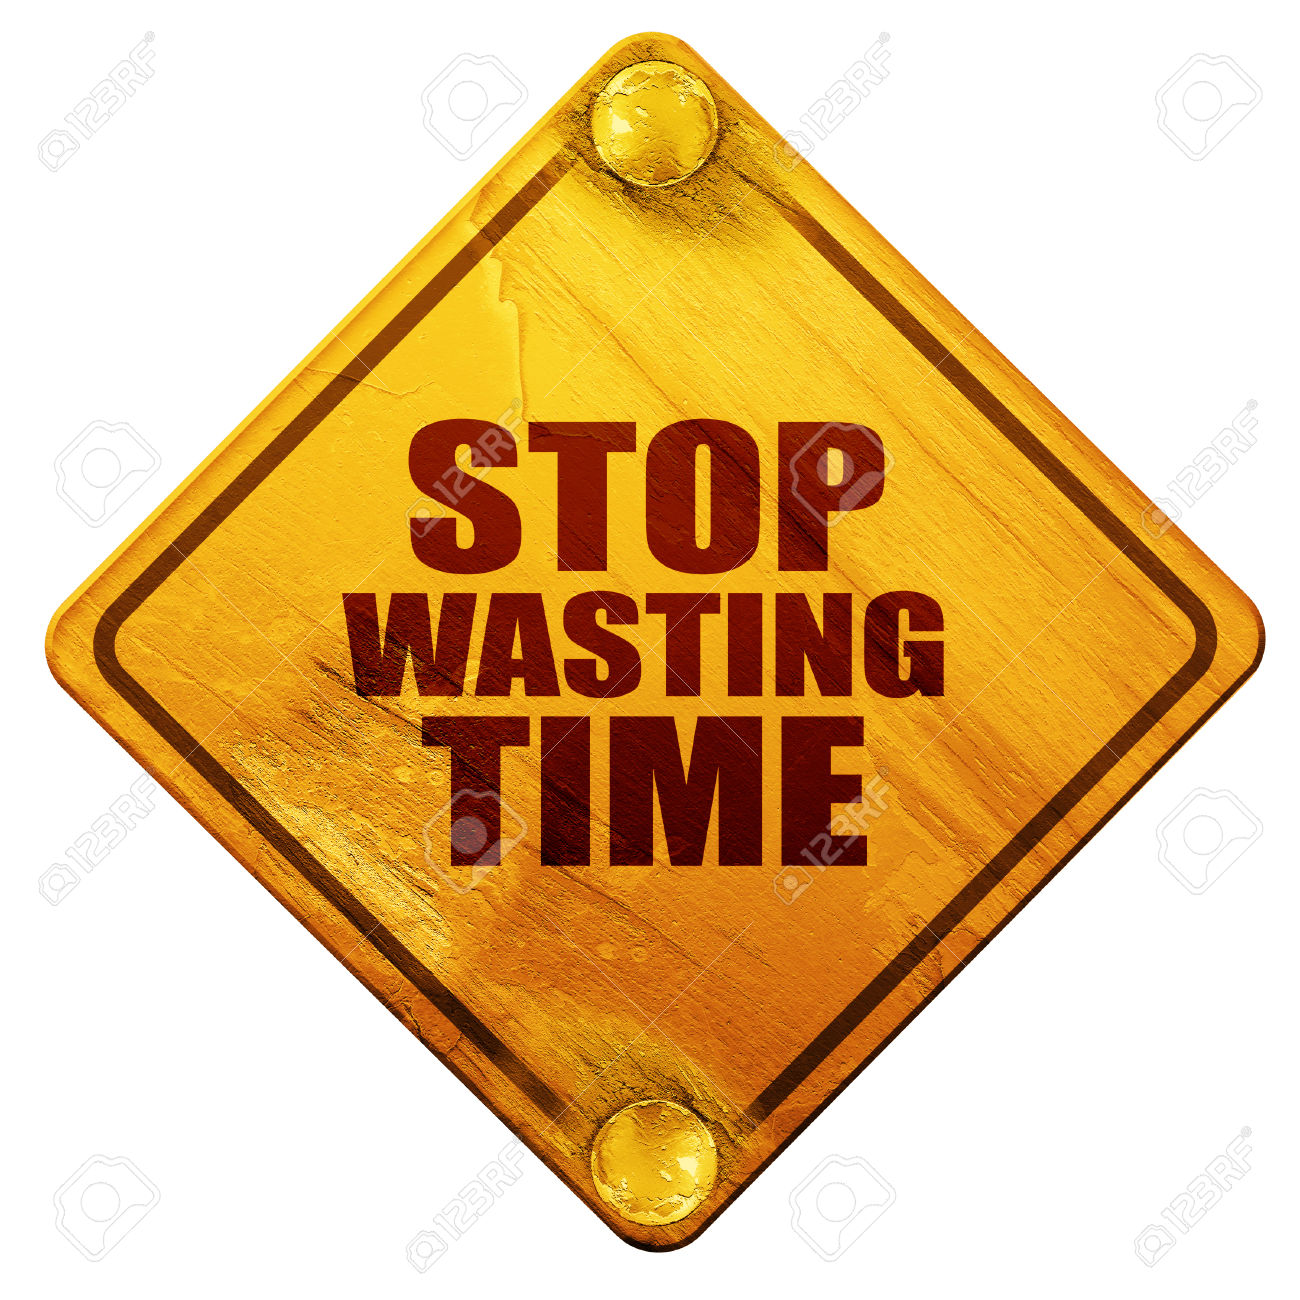 Wasting time clipart.